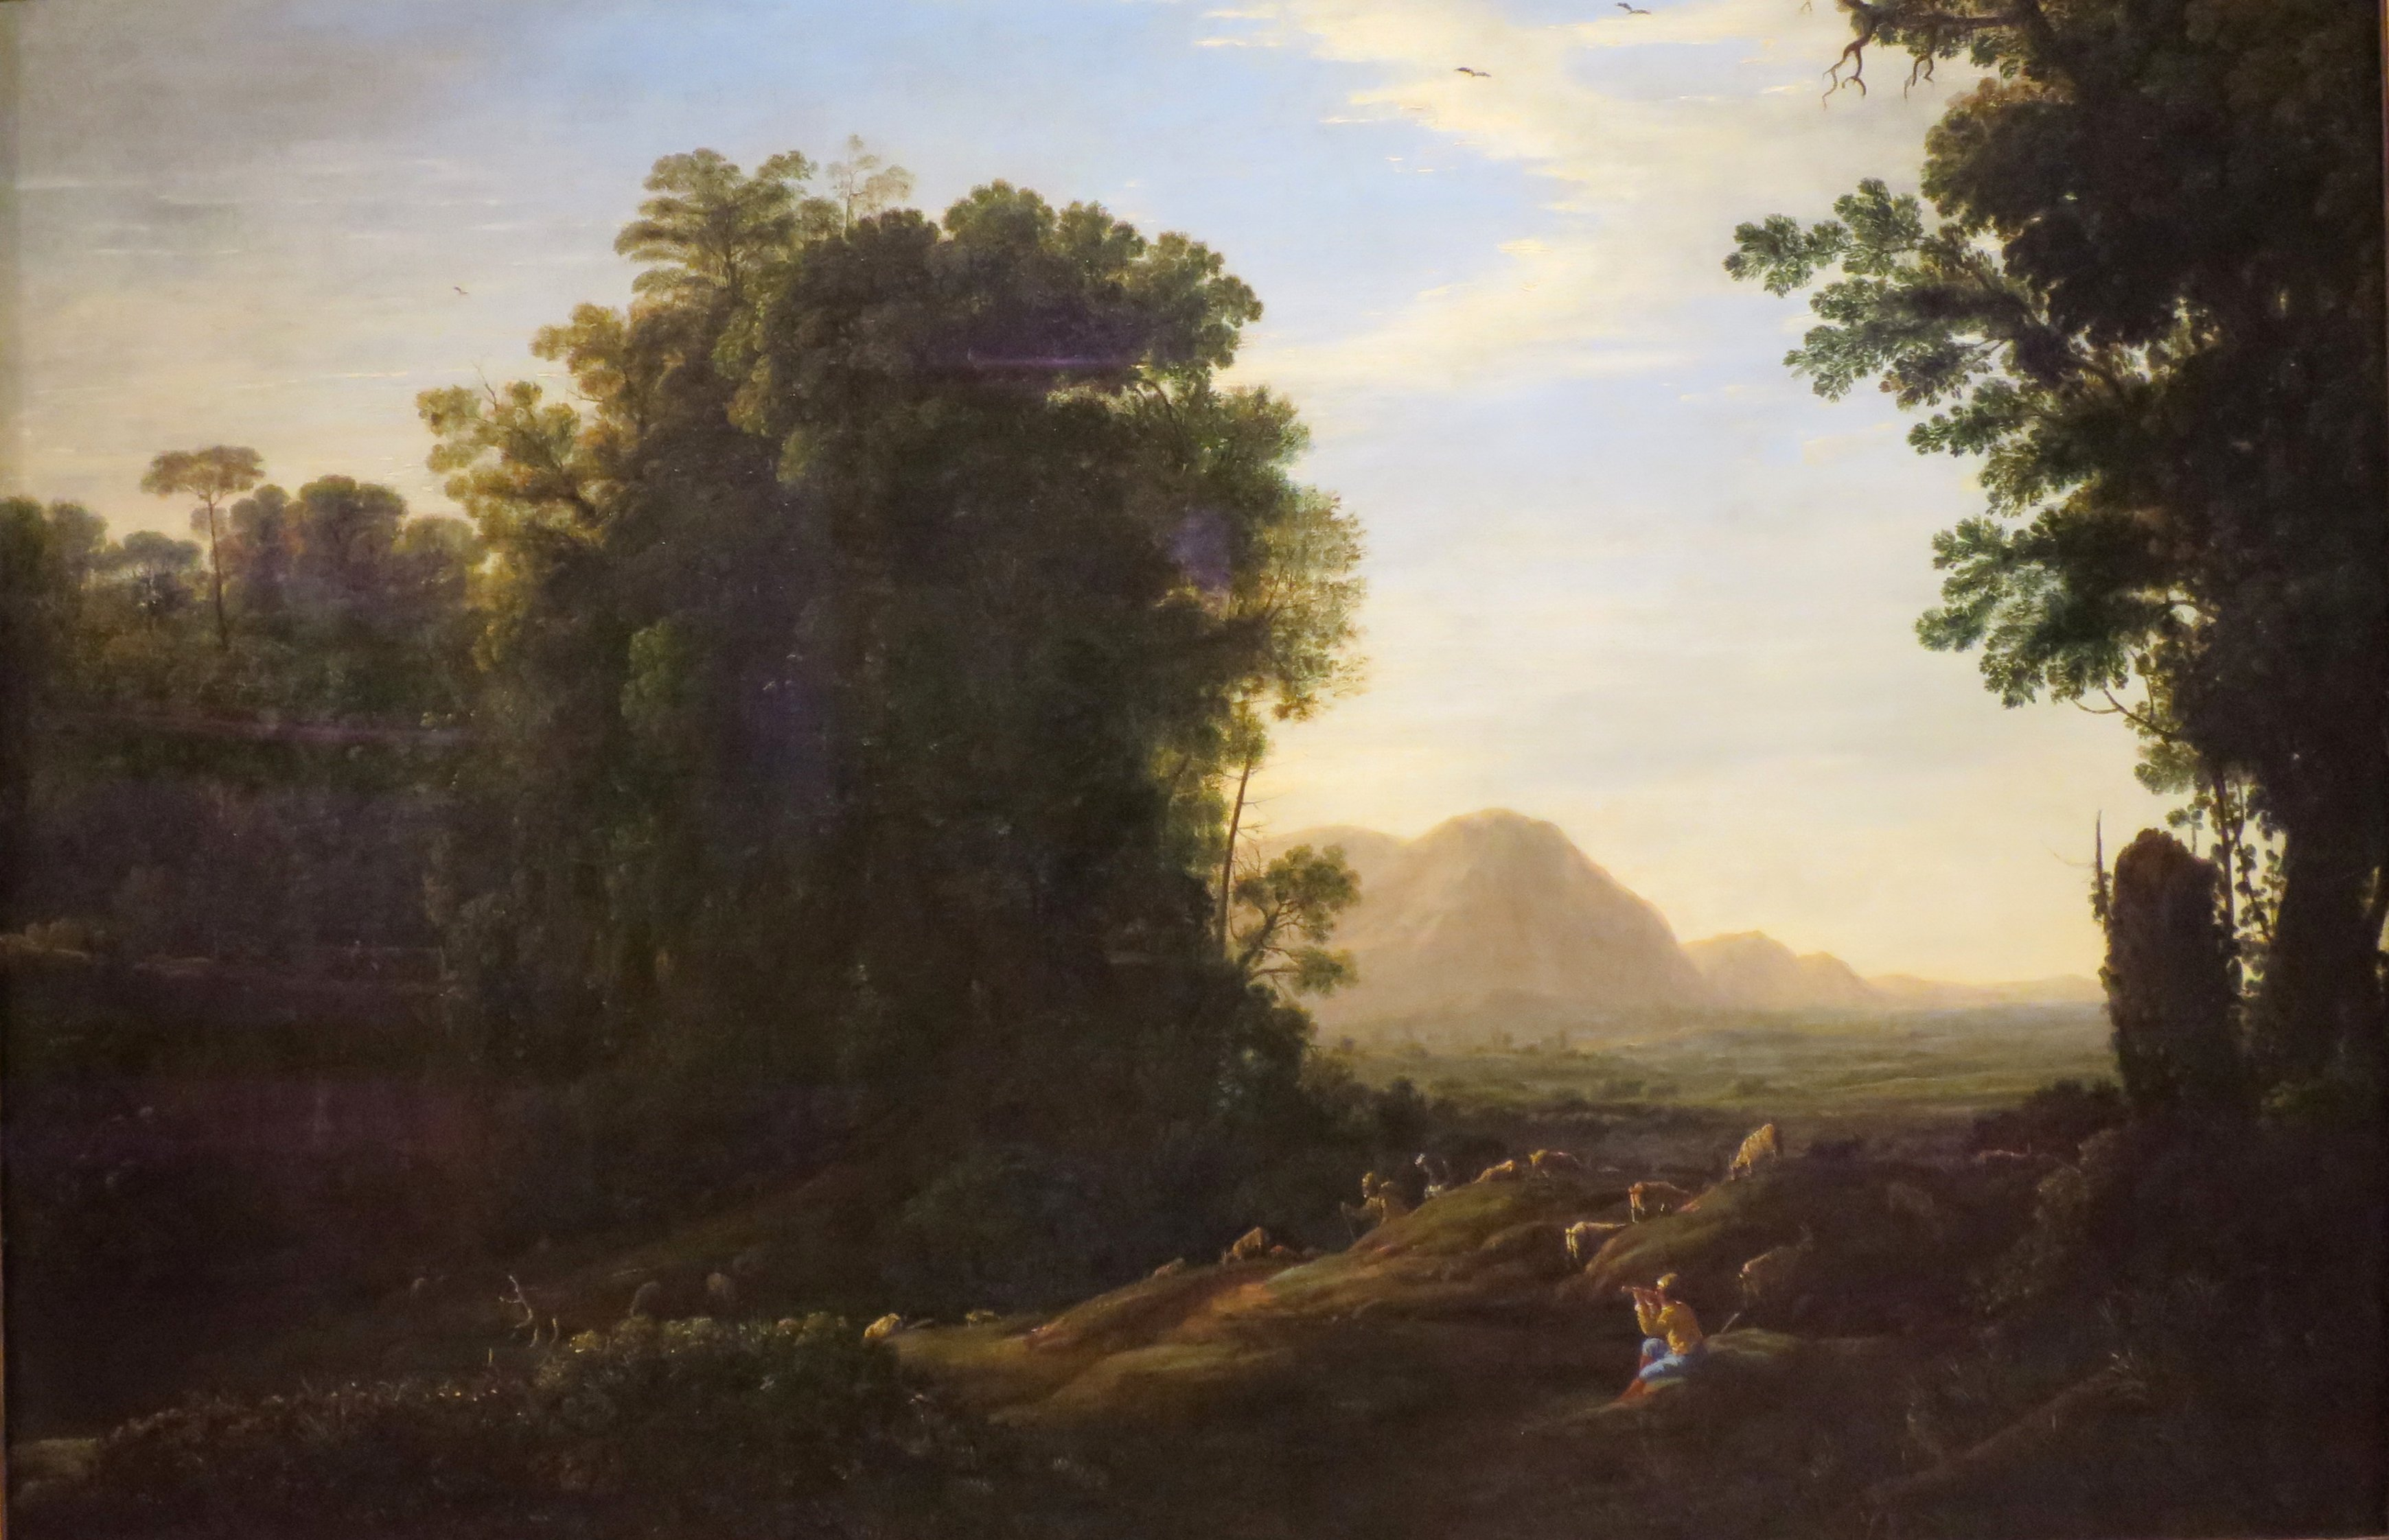 Landscape with a Piping Shepherd by Claude Lorrain, oil on canvas circa 1629-32,. Currently in the collections of the Norton Simon Museum.